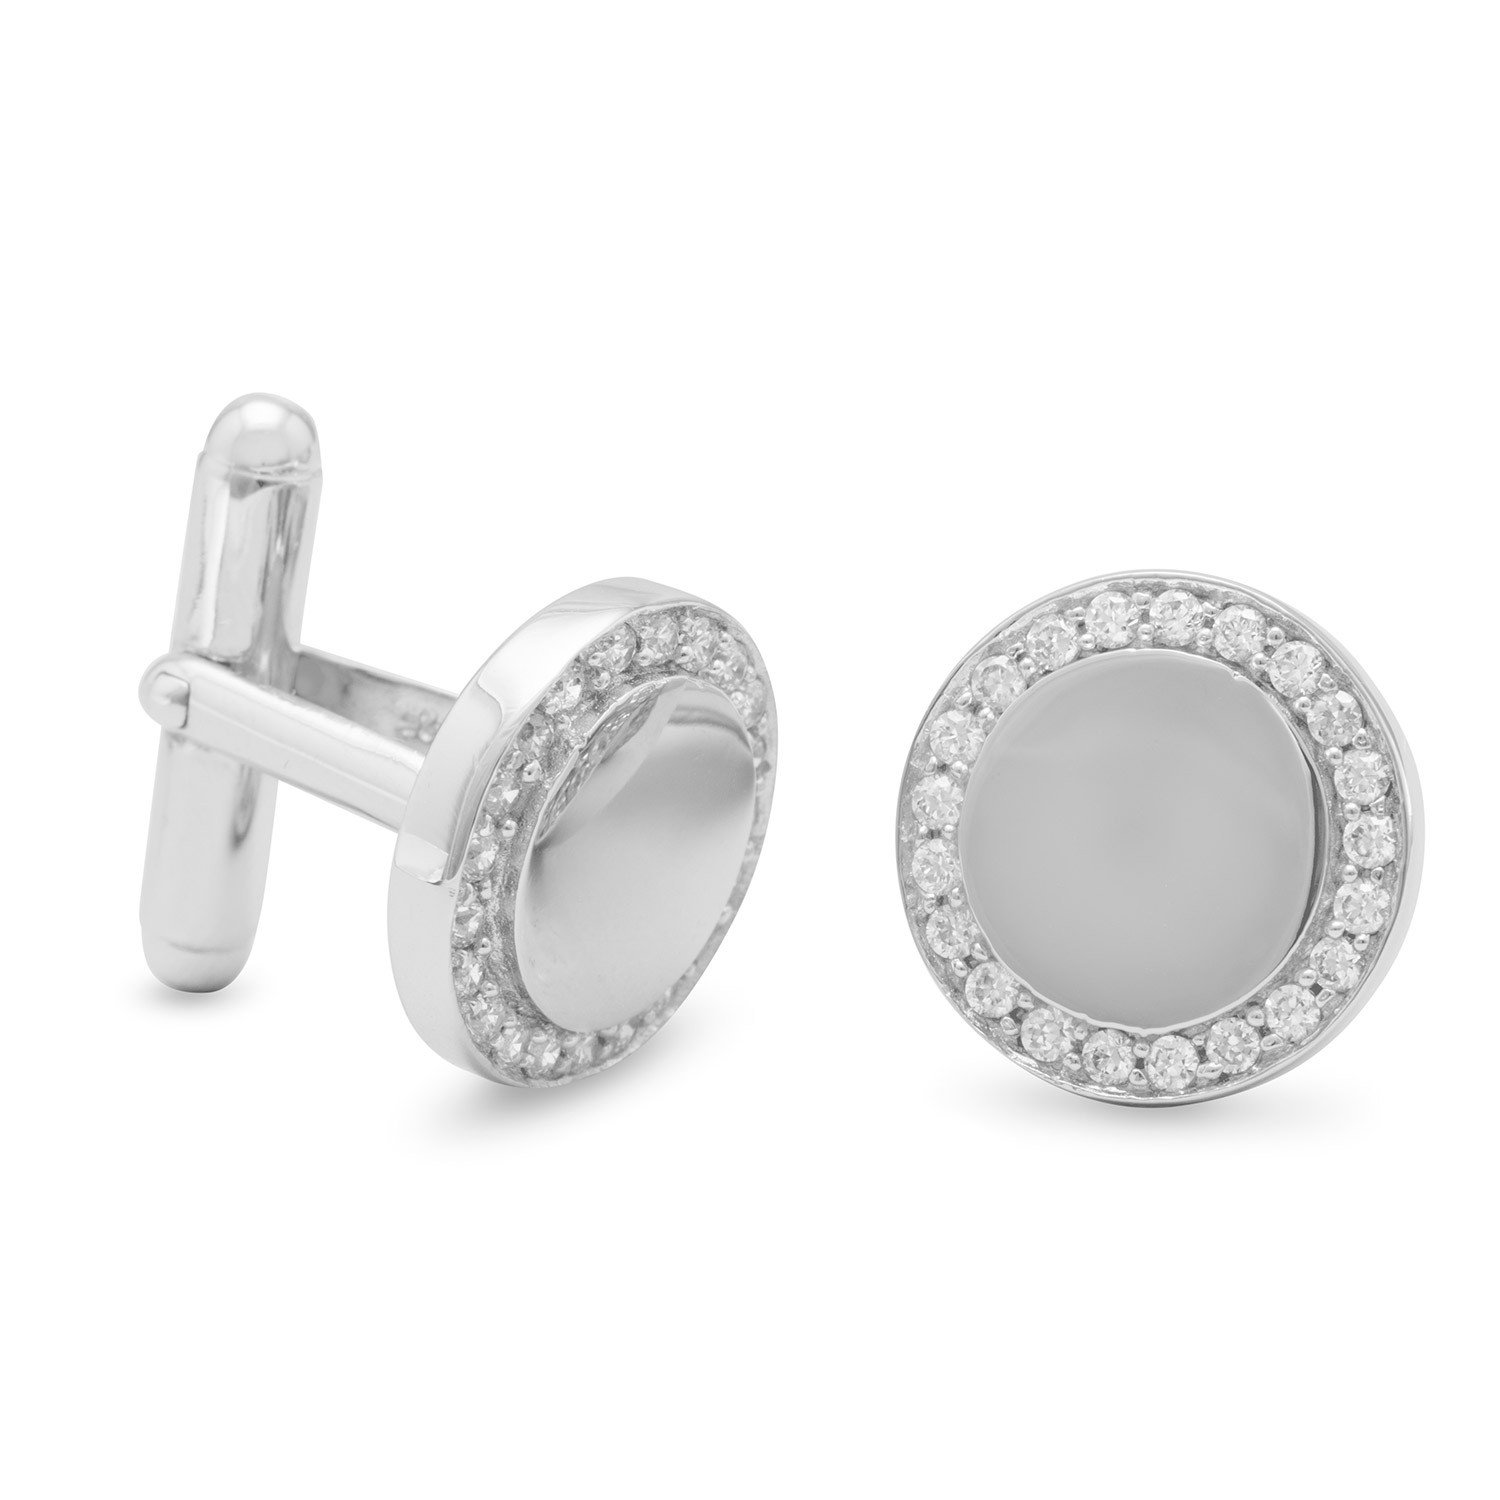 Rhodium Plated Cuff Links with CZ Edge